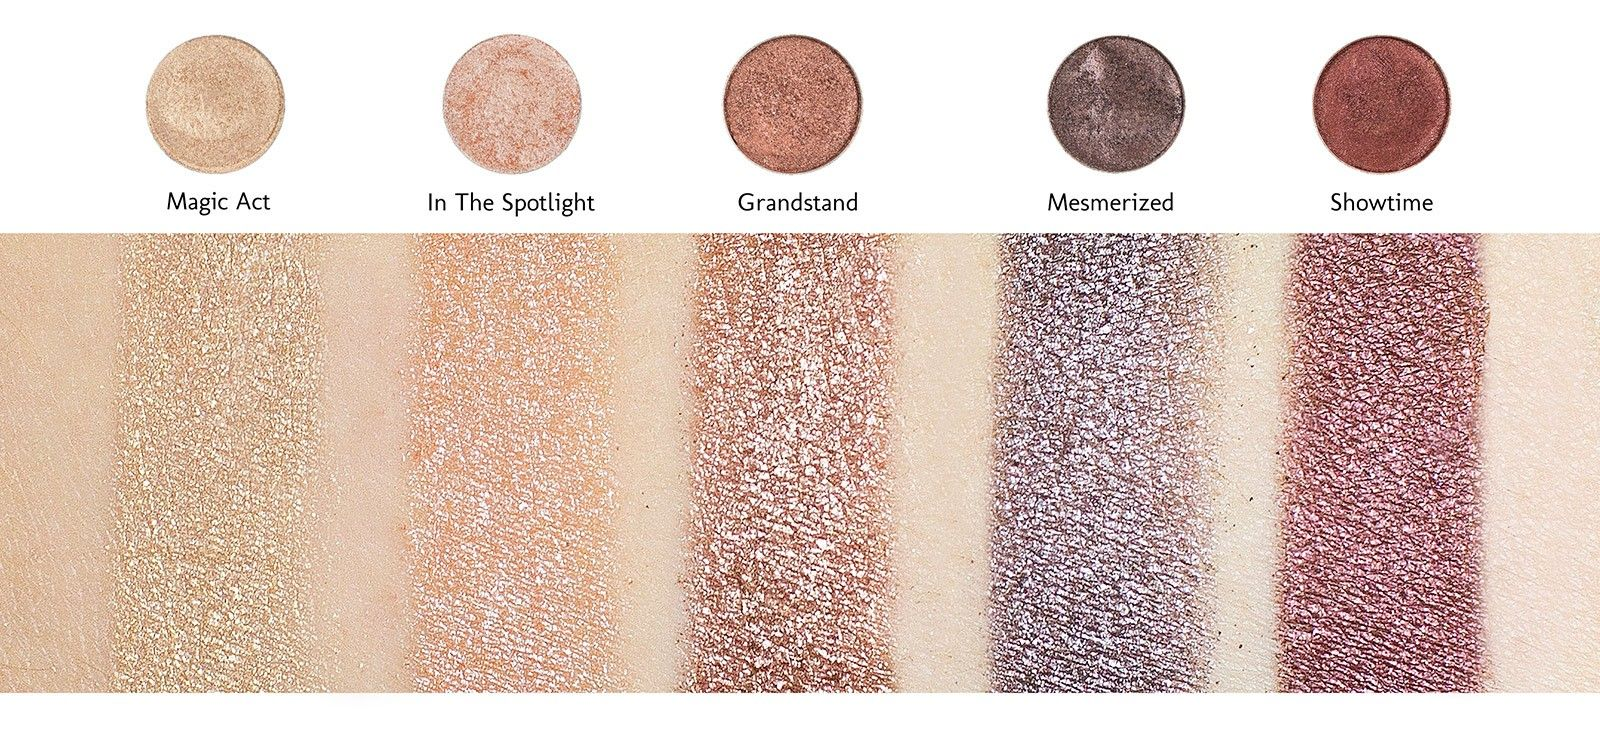 Makeup Geek Foiled Eyeshadows Eyeshadows Eyes Makeup Geek Foiled Eyeshadow Makeup Geek Eyeshadow Makeup Geek